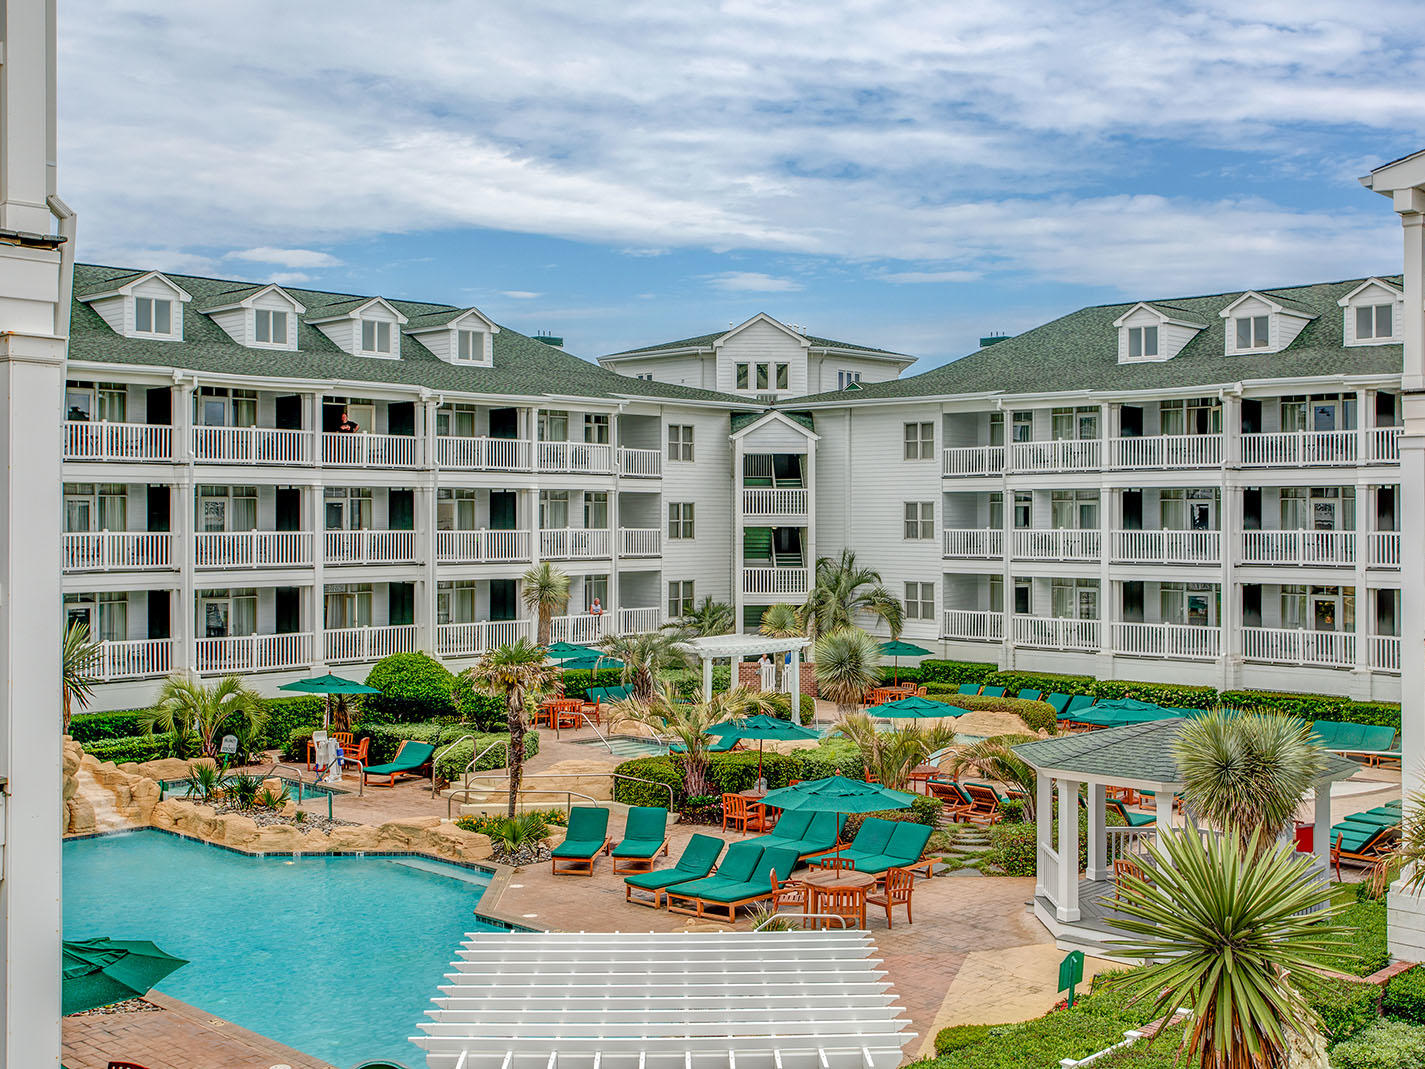 Turtle Cay Resort at Diamond Resorts Virginia Beach